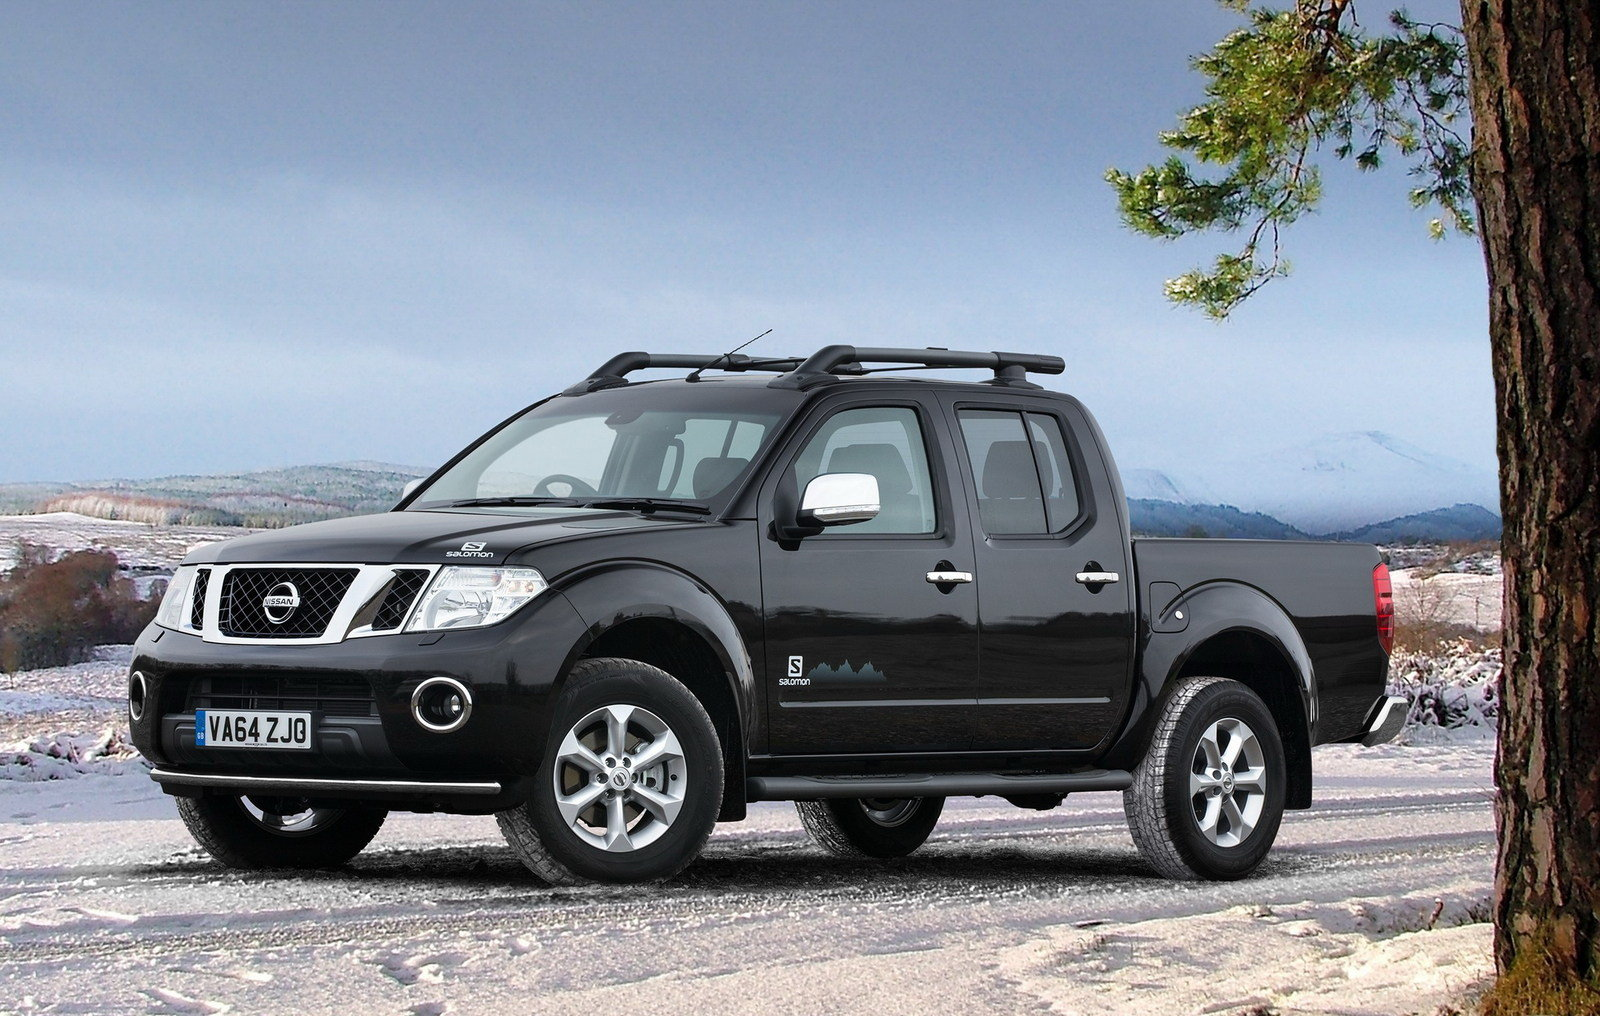 2015 nissan navara salomon picture 617922 truck review. Black Bedroom Furniture Sets. Home Design Ideas